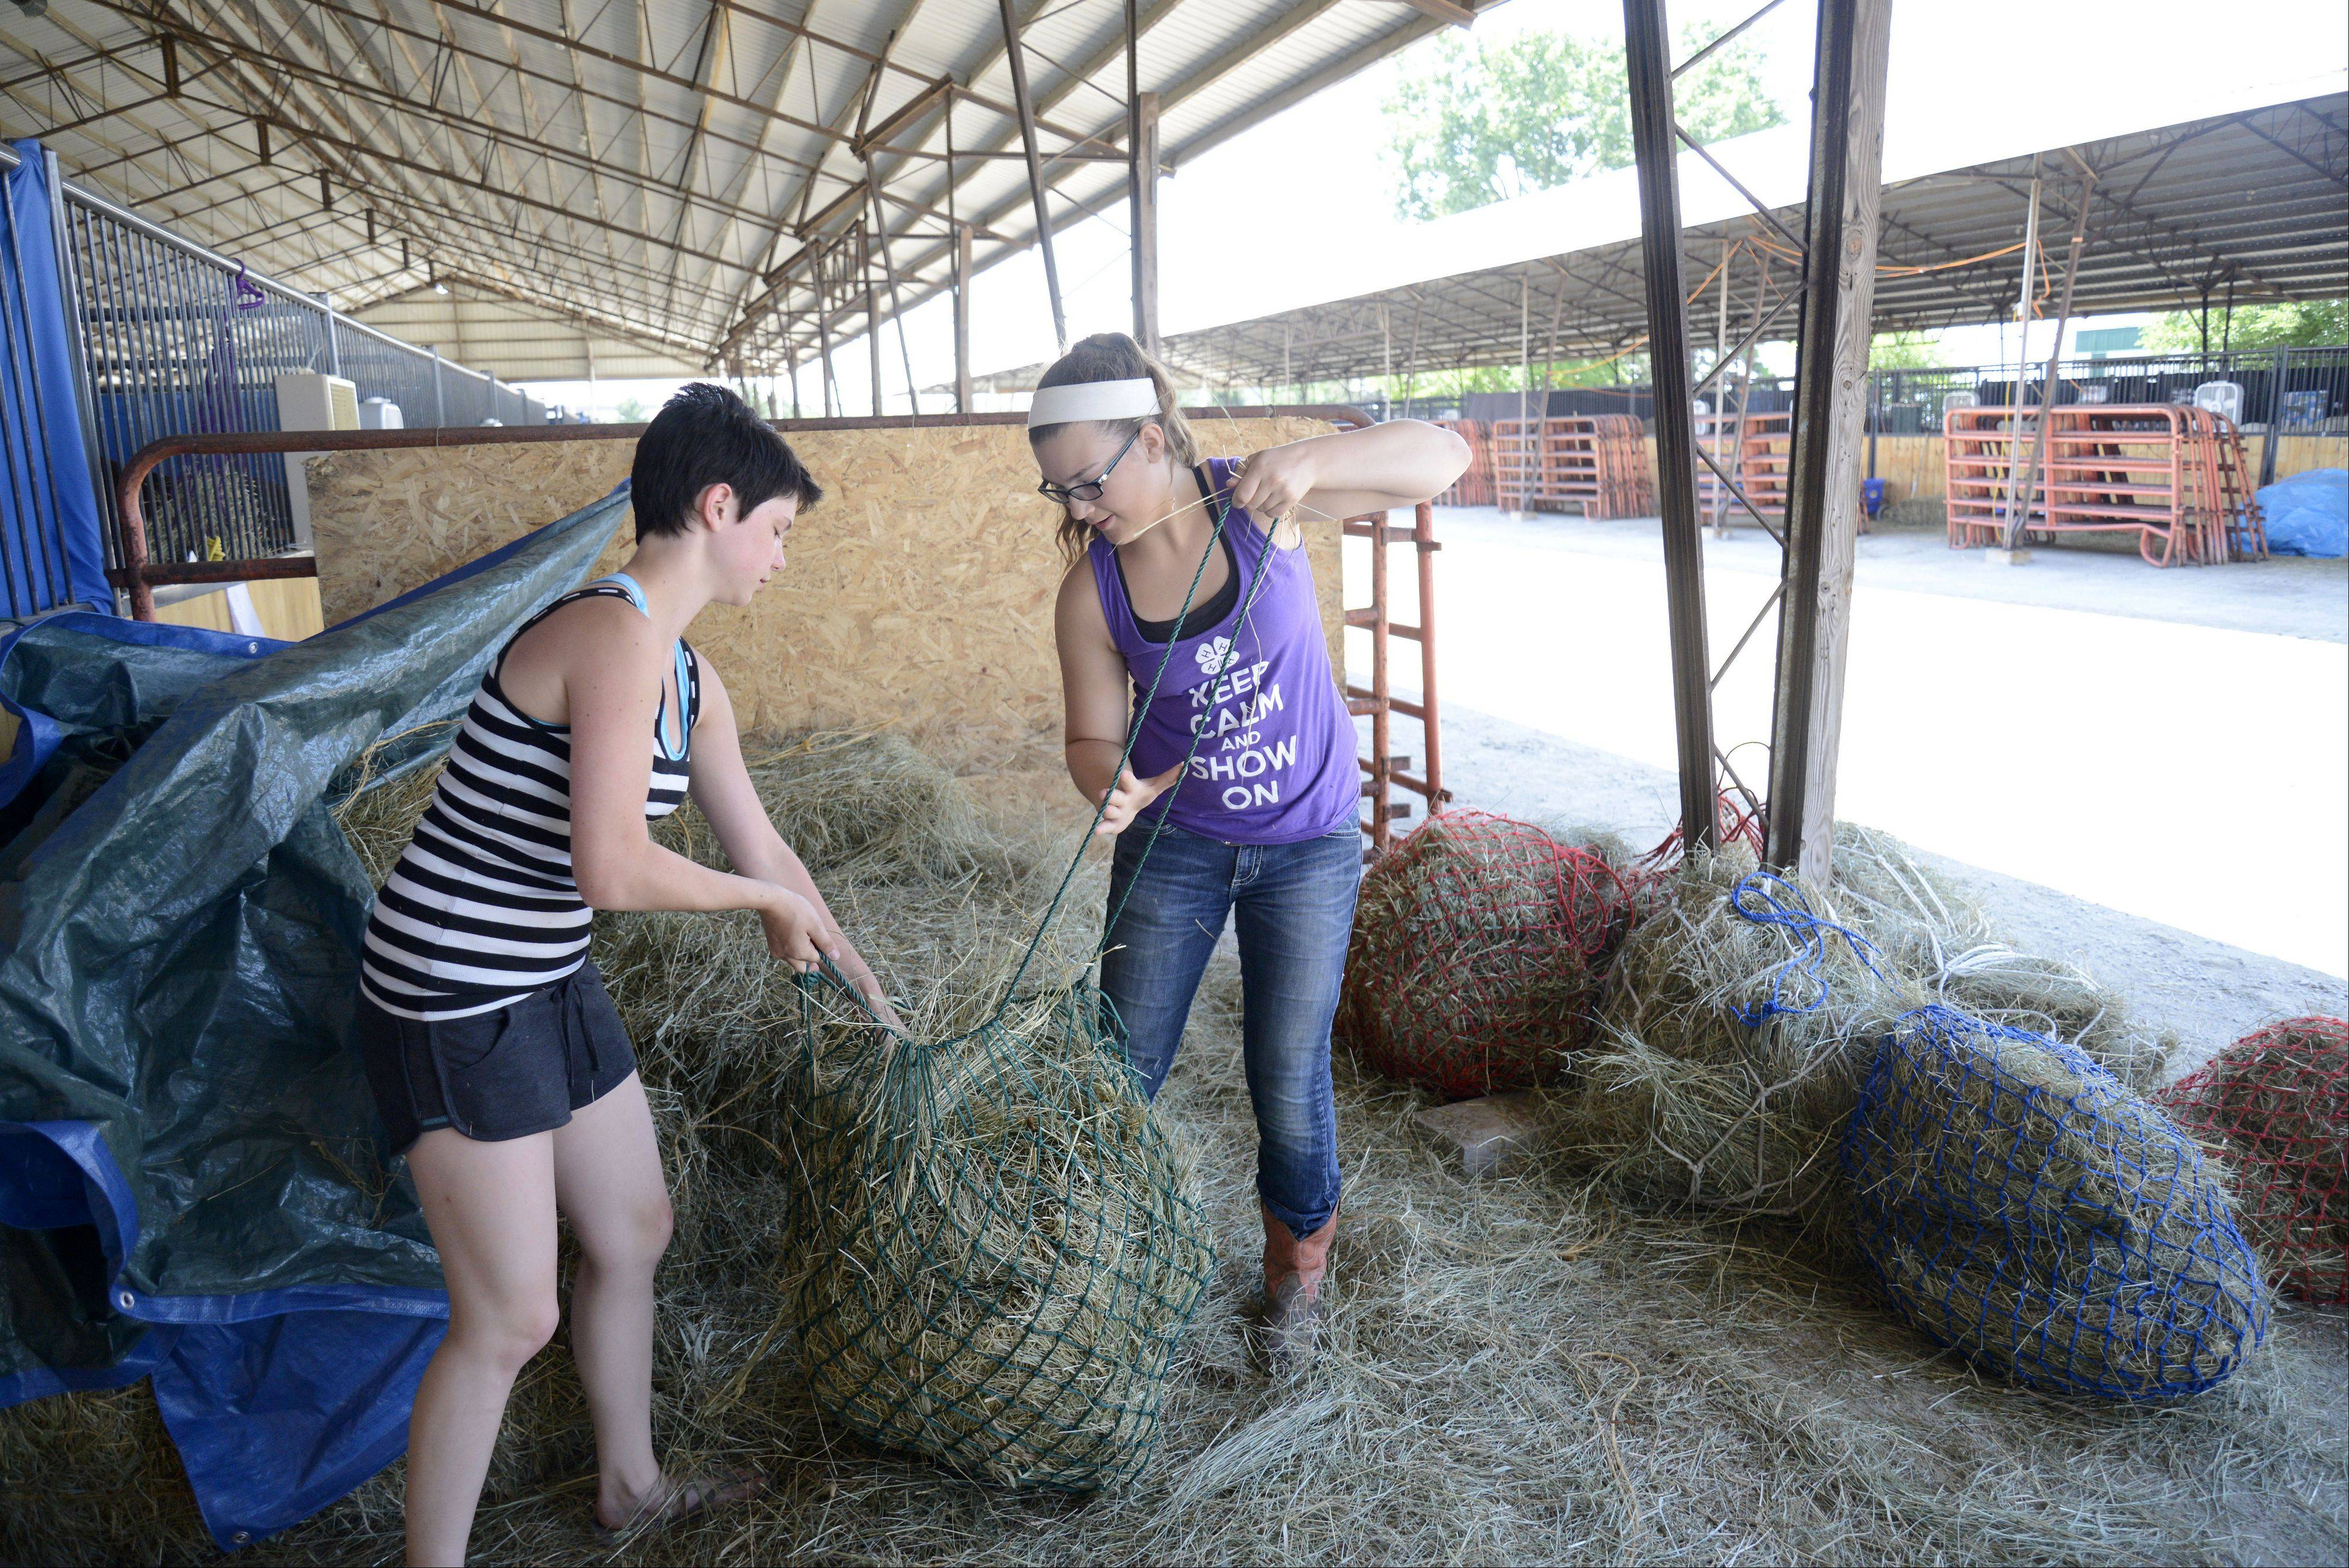 Zoe Kowalczyk, 15, of St. Charles, left, and Lydia Sabanish, 12, of Cortland, team up to fill hay nets for the horses in their Y-Not 4-H group out of Maple Park on Saturday at the Kane County Fair in St. Charles.